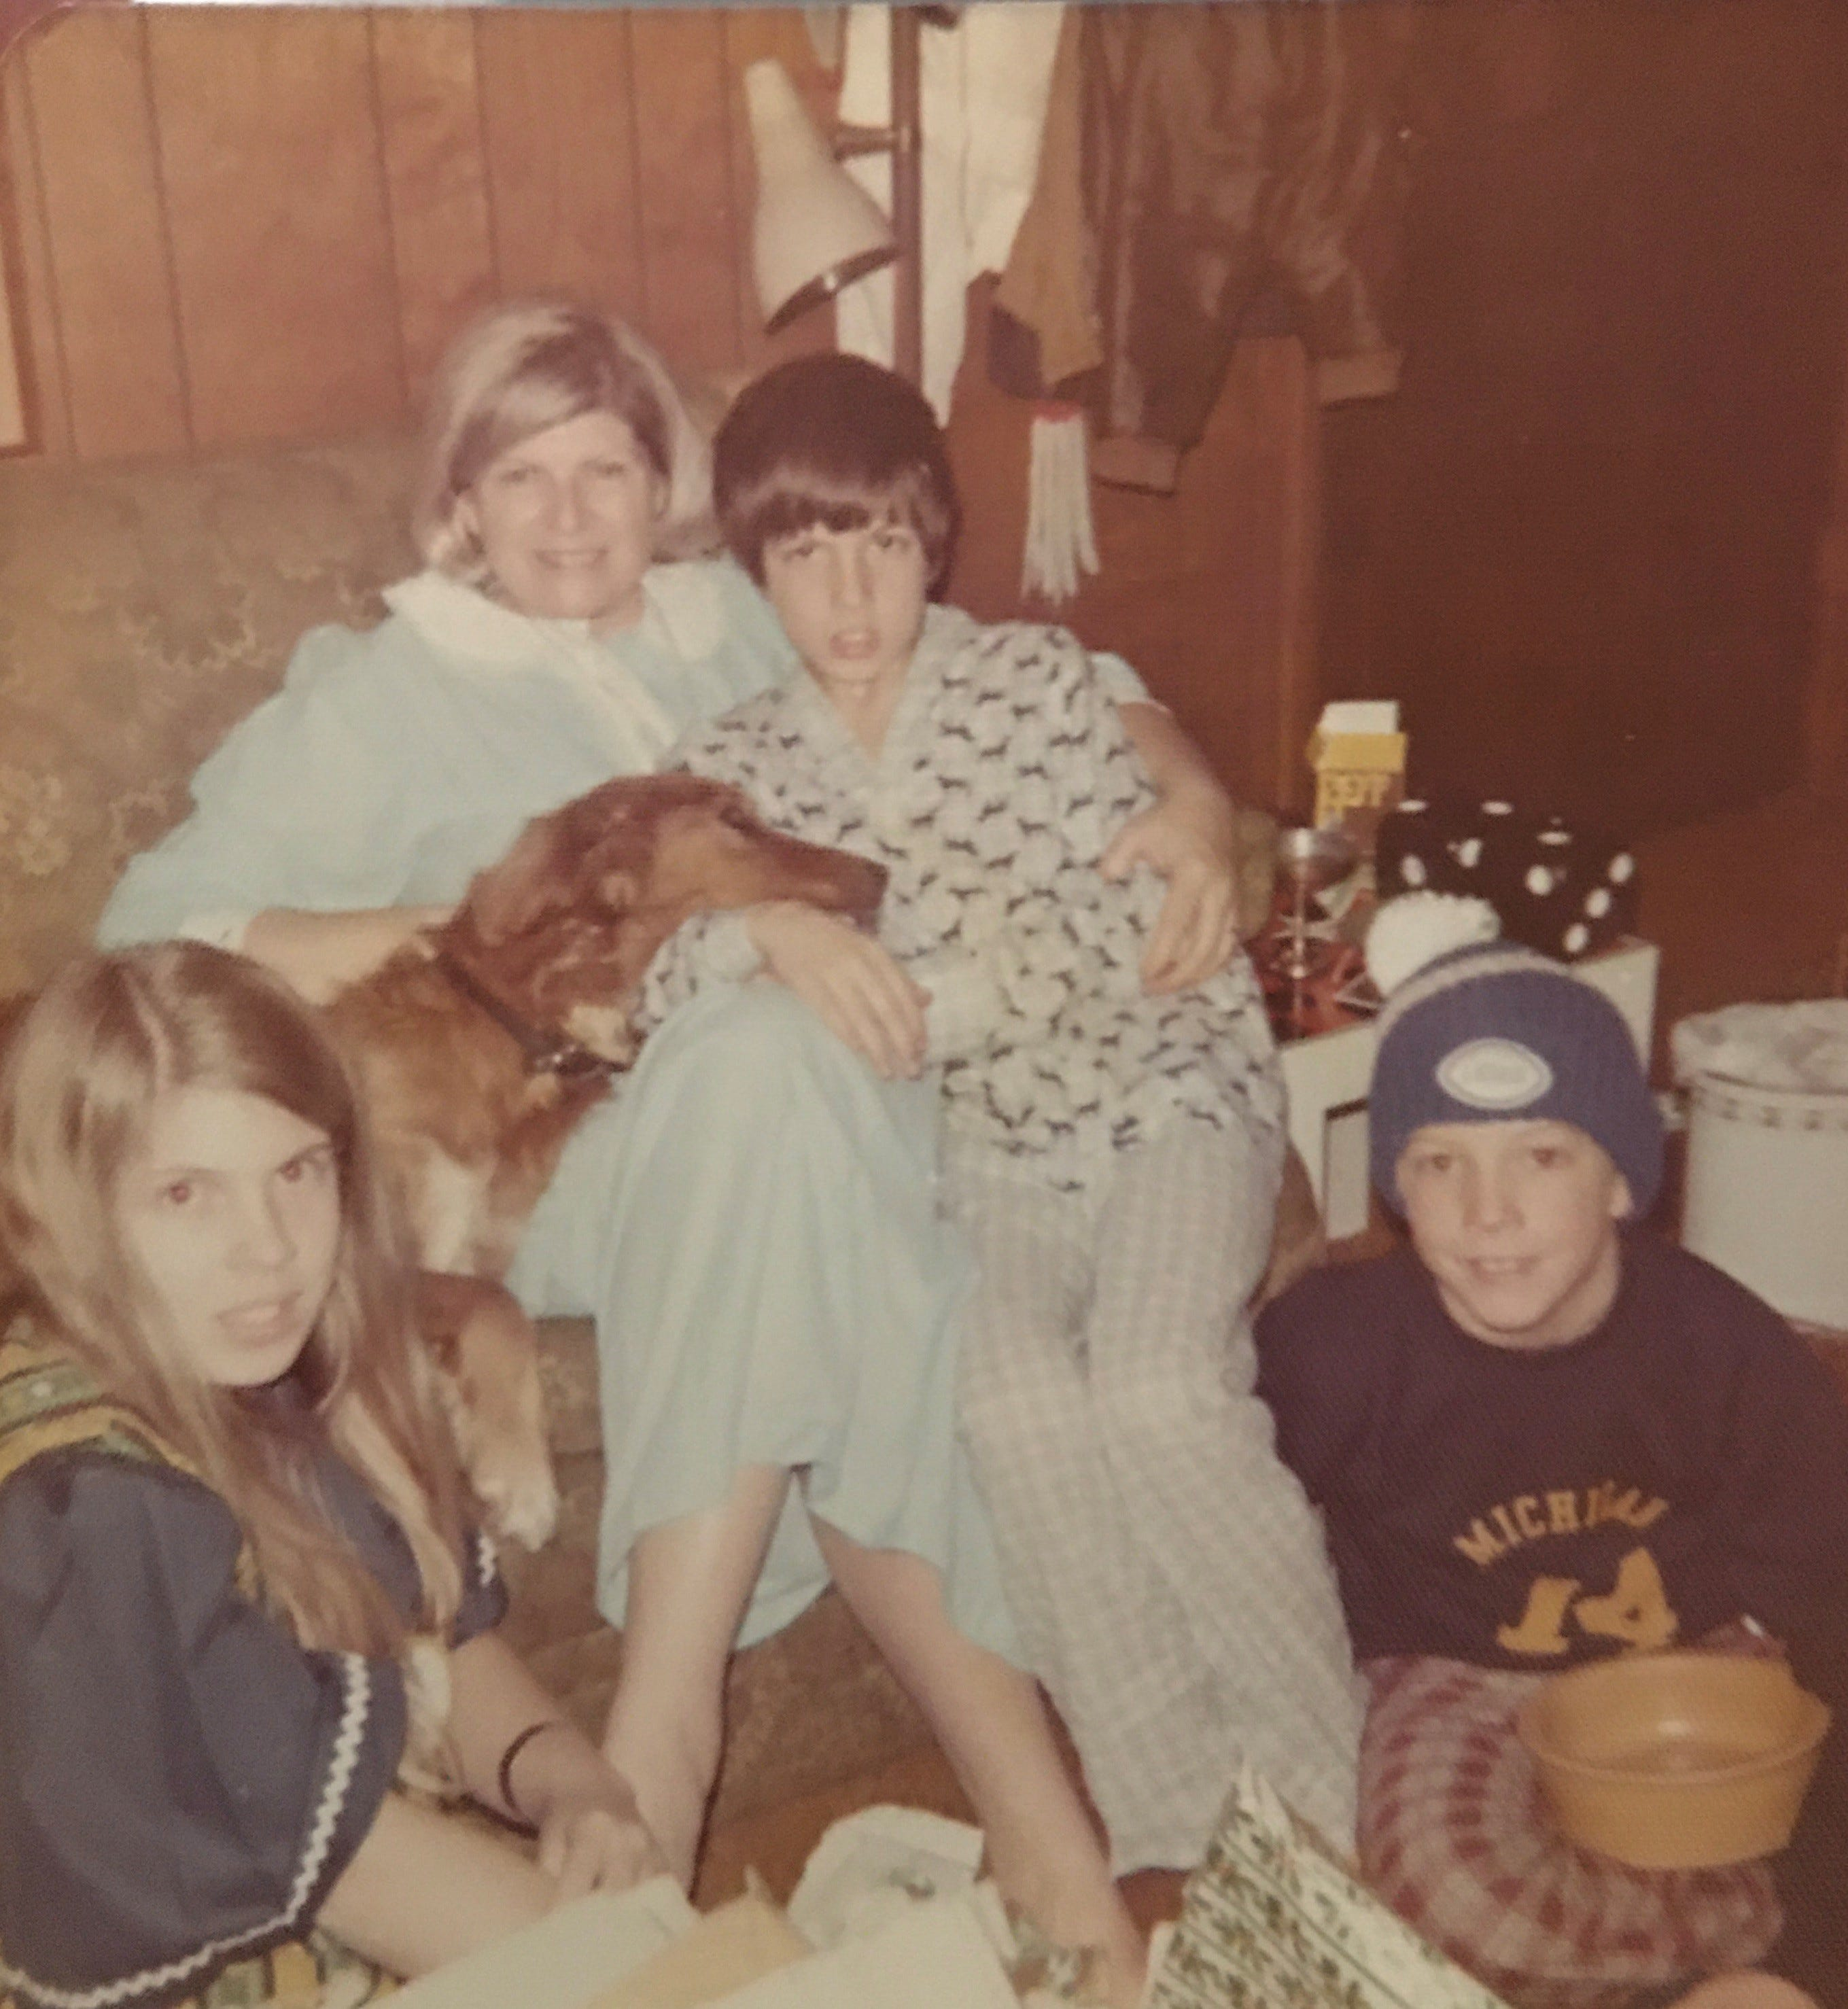 From left, Maura Tracey, dog Tara, Joan Tracey, Lawrence Tracey and Sean Tracey in their home in Lathrup Village circa 1974. Sean Tracey grew up to become a Houston trial lawyer and comes home for summers in Michigan.